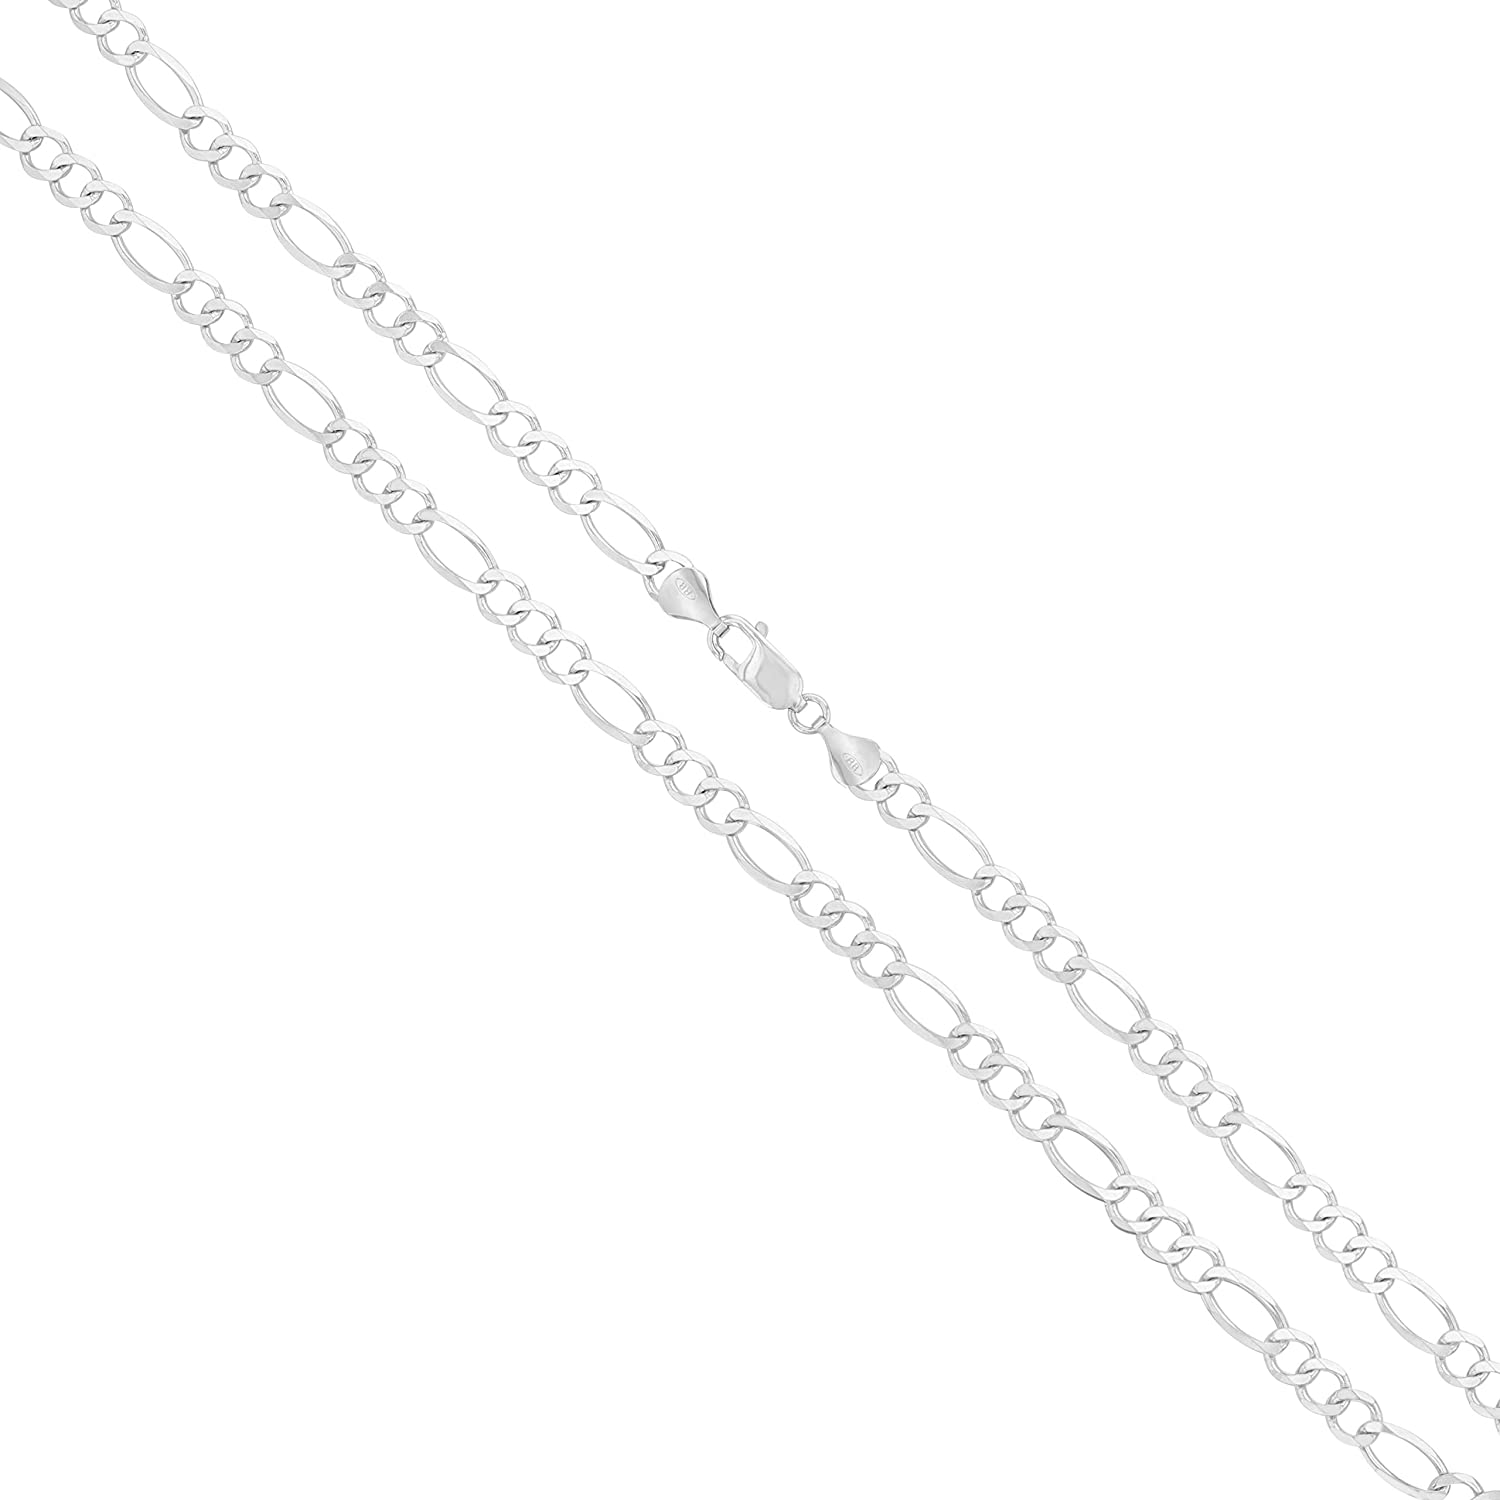 Joule Shop 10K Gold Chains - REAL Solid Yellow or White Gold Chain Necklace 3mm, 4mm, 5mm, 6mm, 7.5mm Figaro Link for Women and Men 16-30